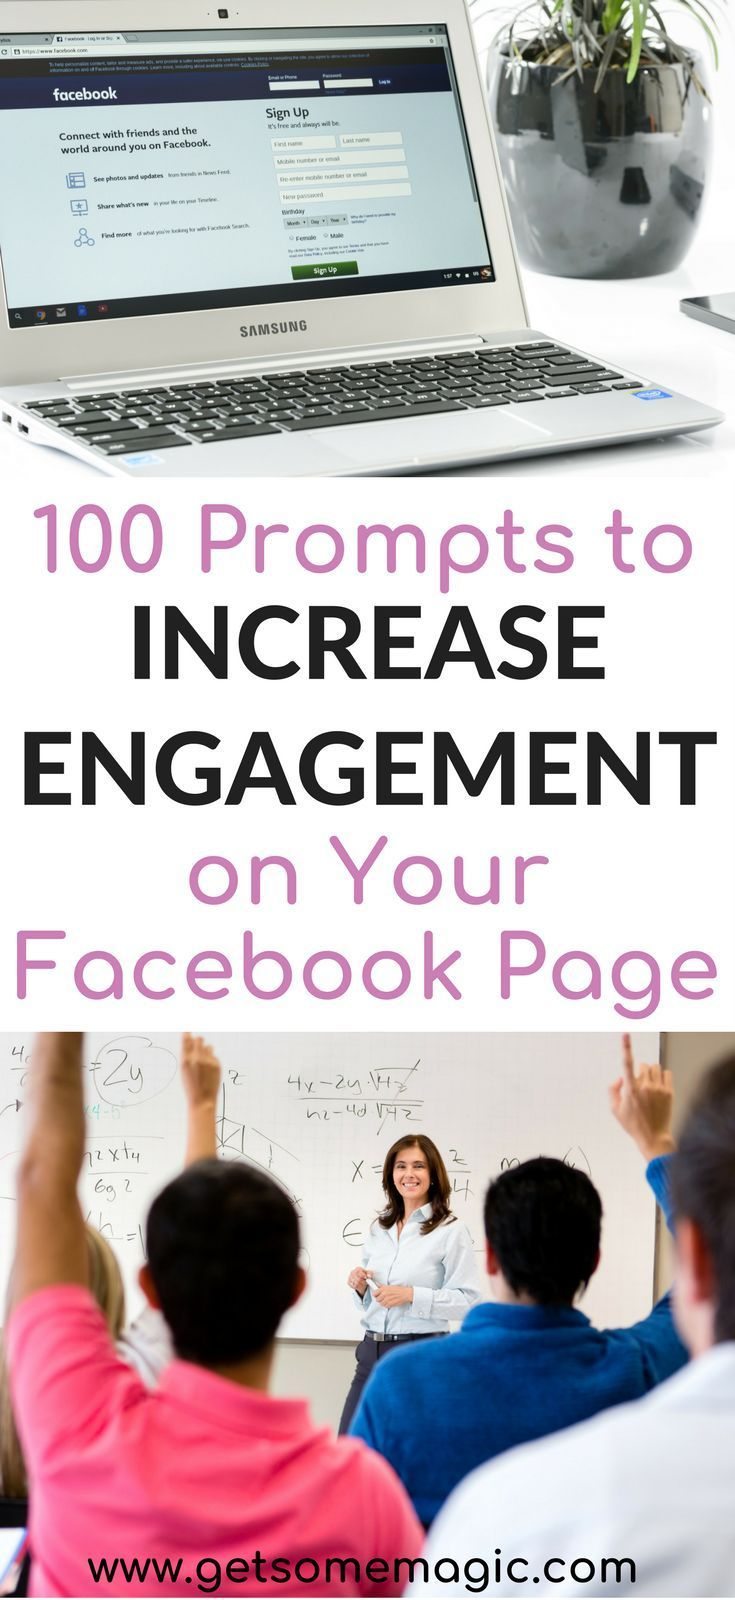 Are you frustrated that your Facebook Page just isn't getting the engagement that you hoped it would? Come check out these 100 Questions to ask on your Facebook page. These 100 questions will help you increase your engagement on your Facebook page while making it super easy to schedule content. Come see what our favorite prompts are and save this to your Blog or Business board so you can find it later.